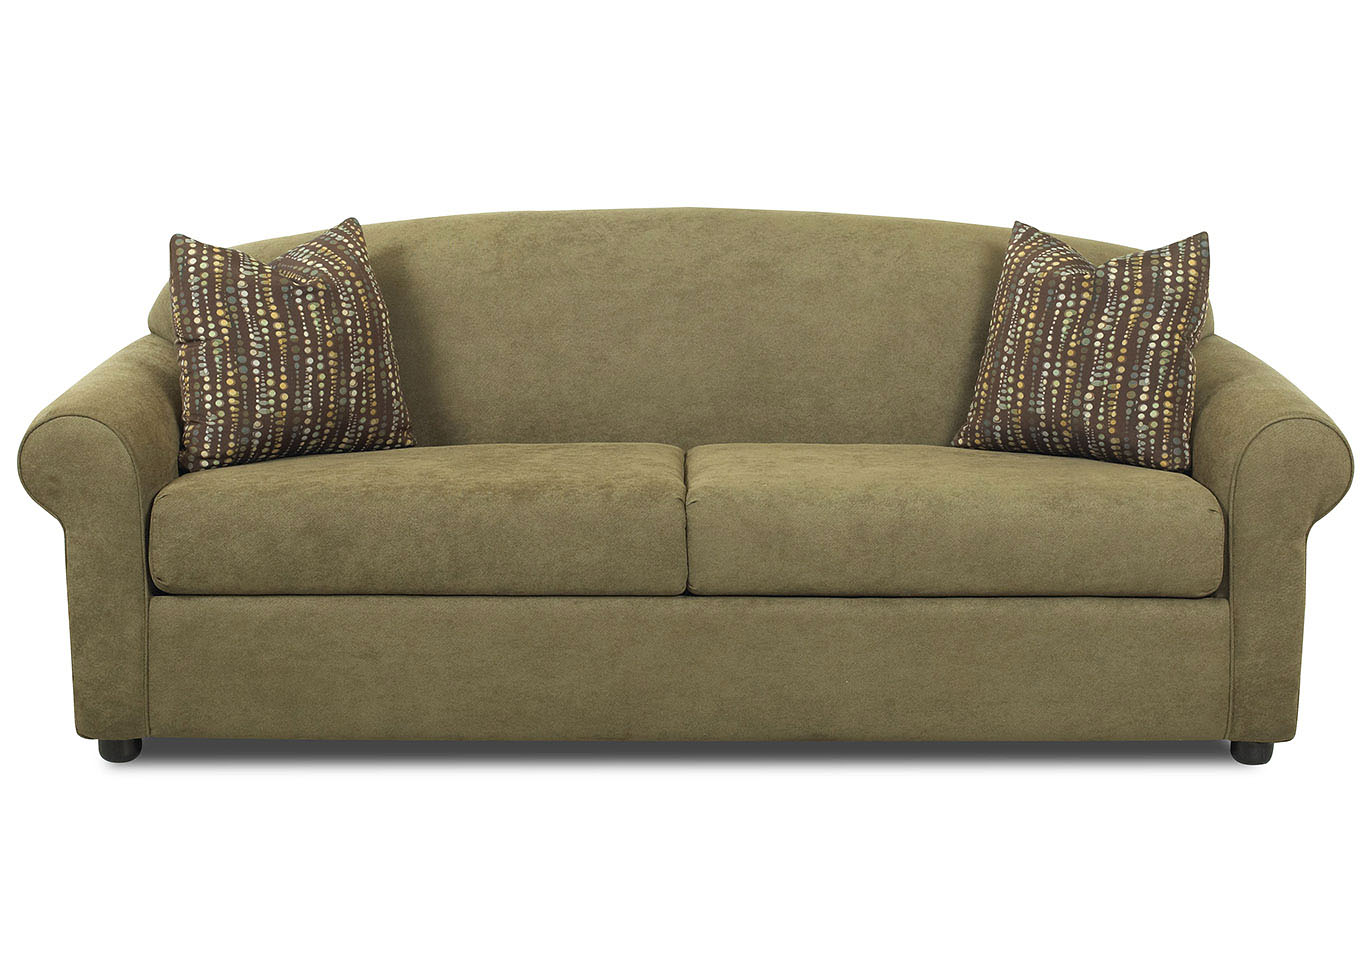 Possibilities Olive Green Stationary Fabric Sofa,Klaussner Home Furnishings